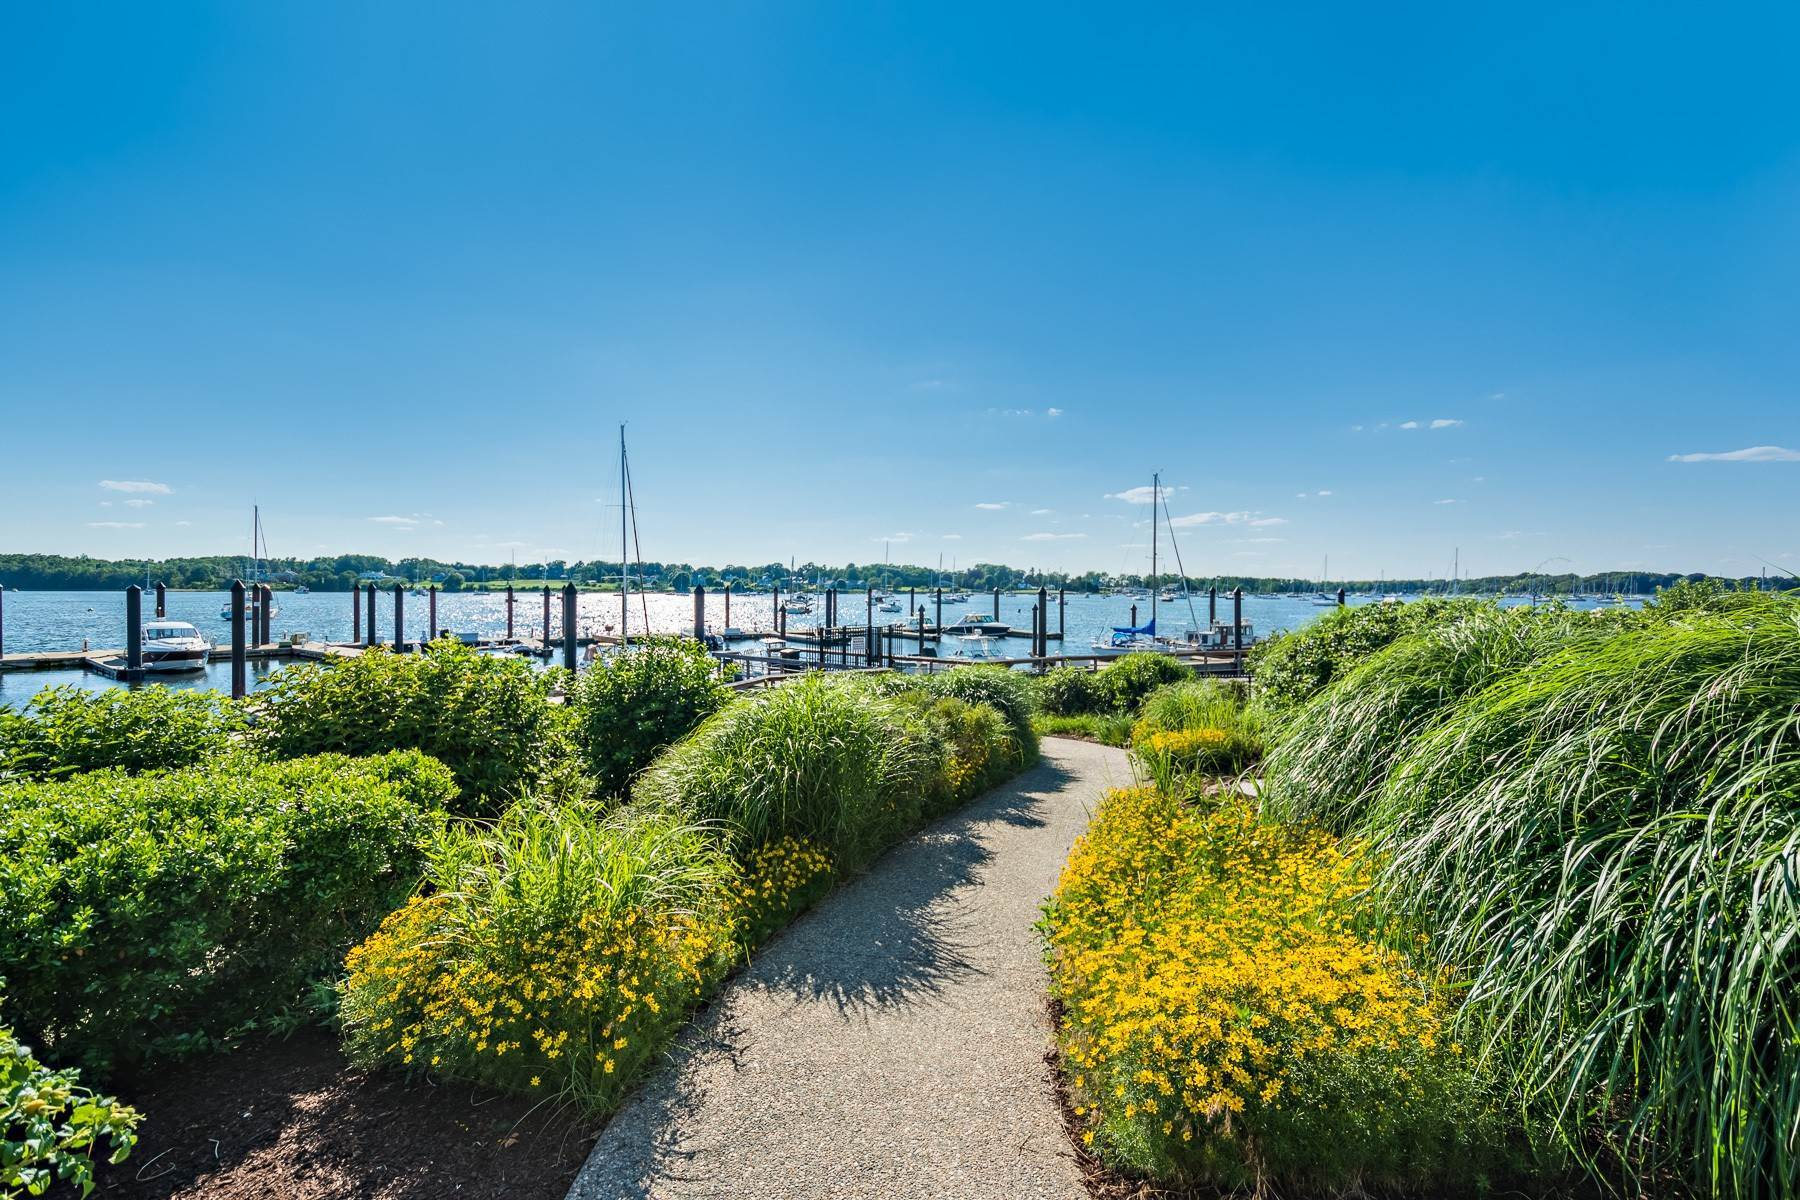 6. Condominiums for Sale at 341 THAMES ST, UNIT#303S, 303S Bristol, Rhode Island 02809 United States